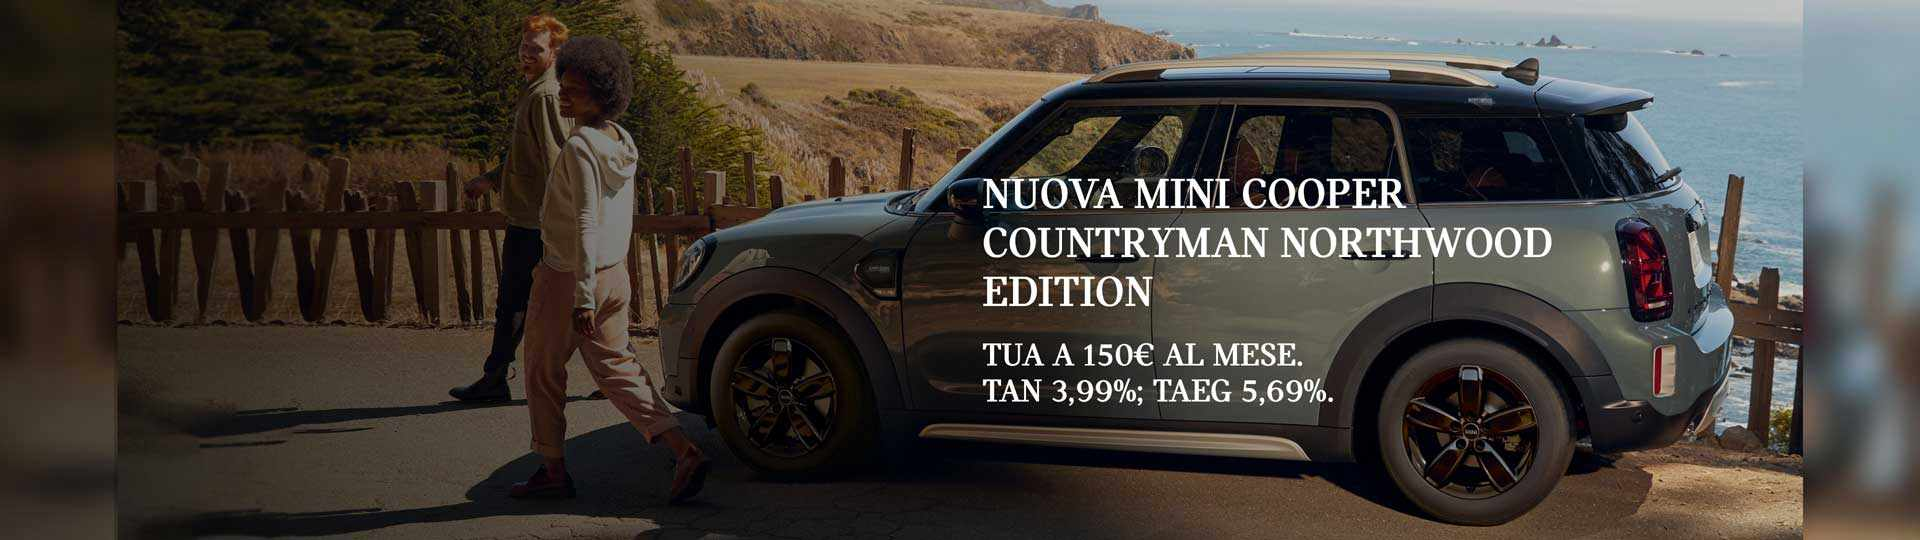 Nuova-MINI-Countryman-min.jpg